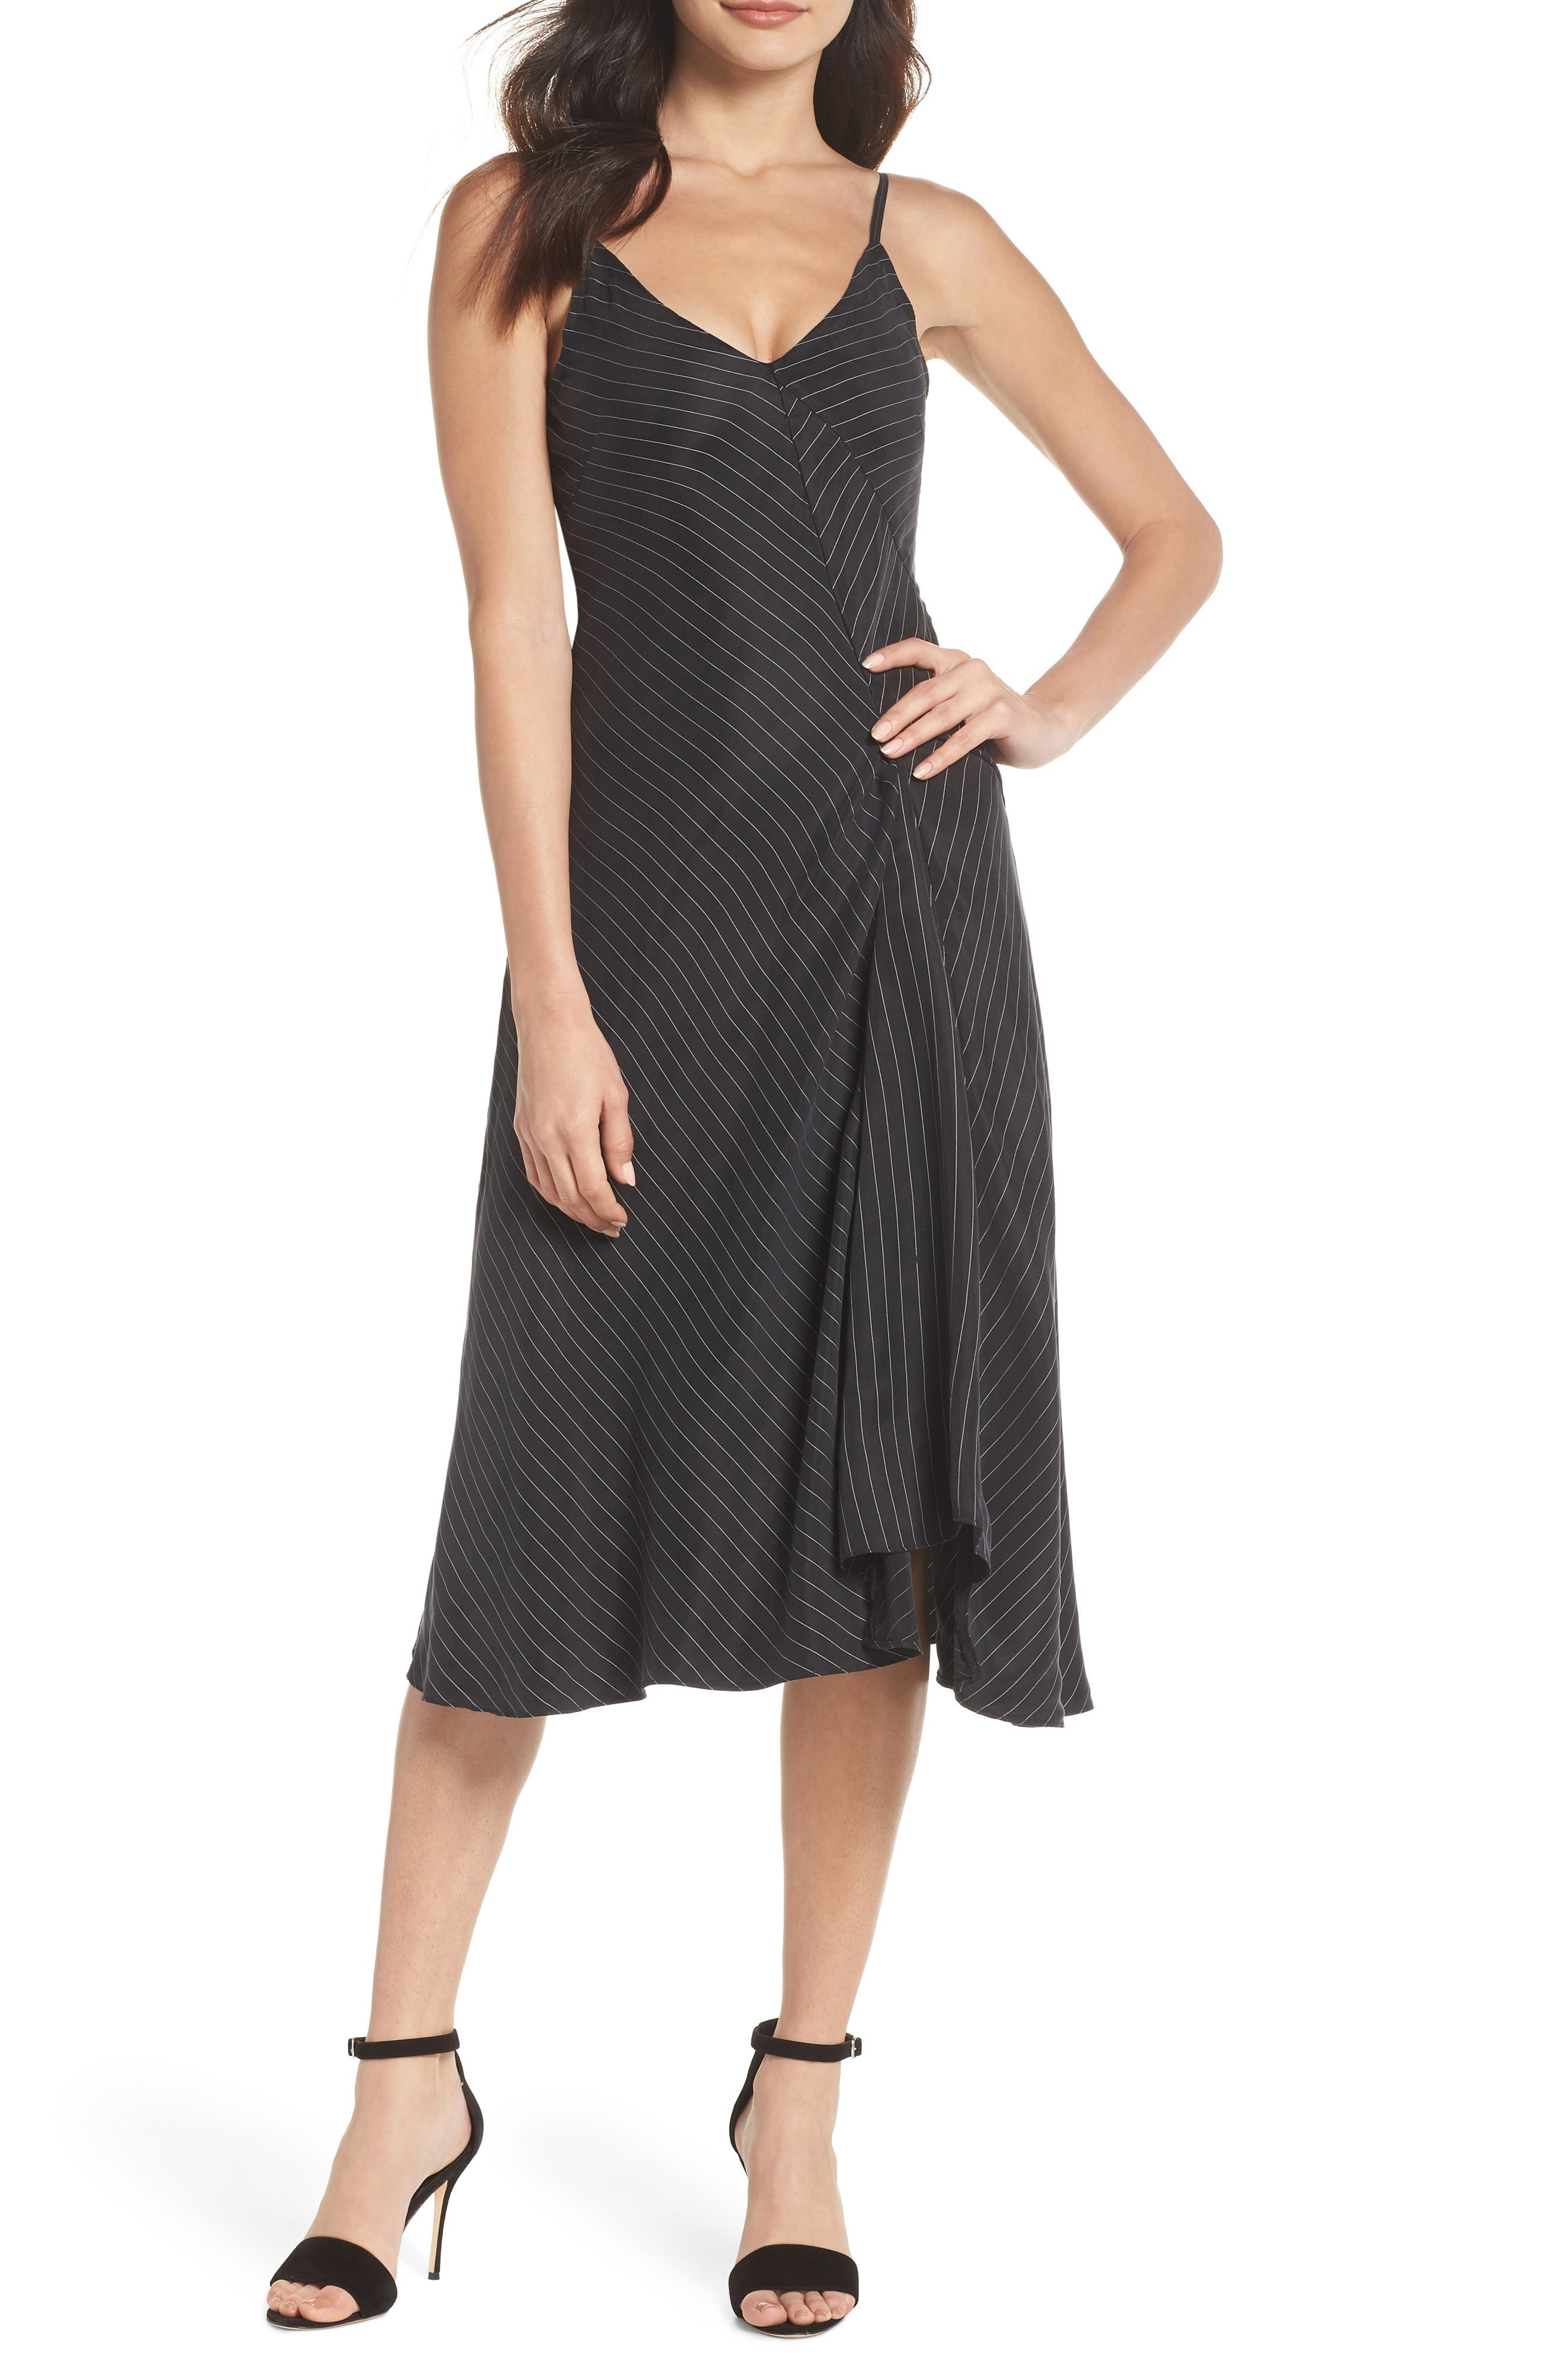 Bay Area Sleeveless Pinstripe Midi Dress,                             Main thumbnail 1, color,                             001